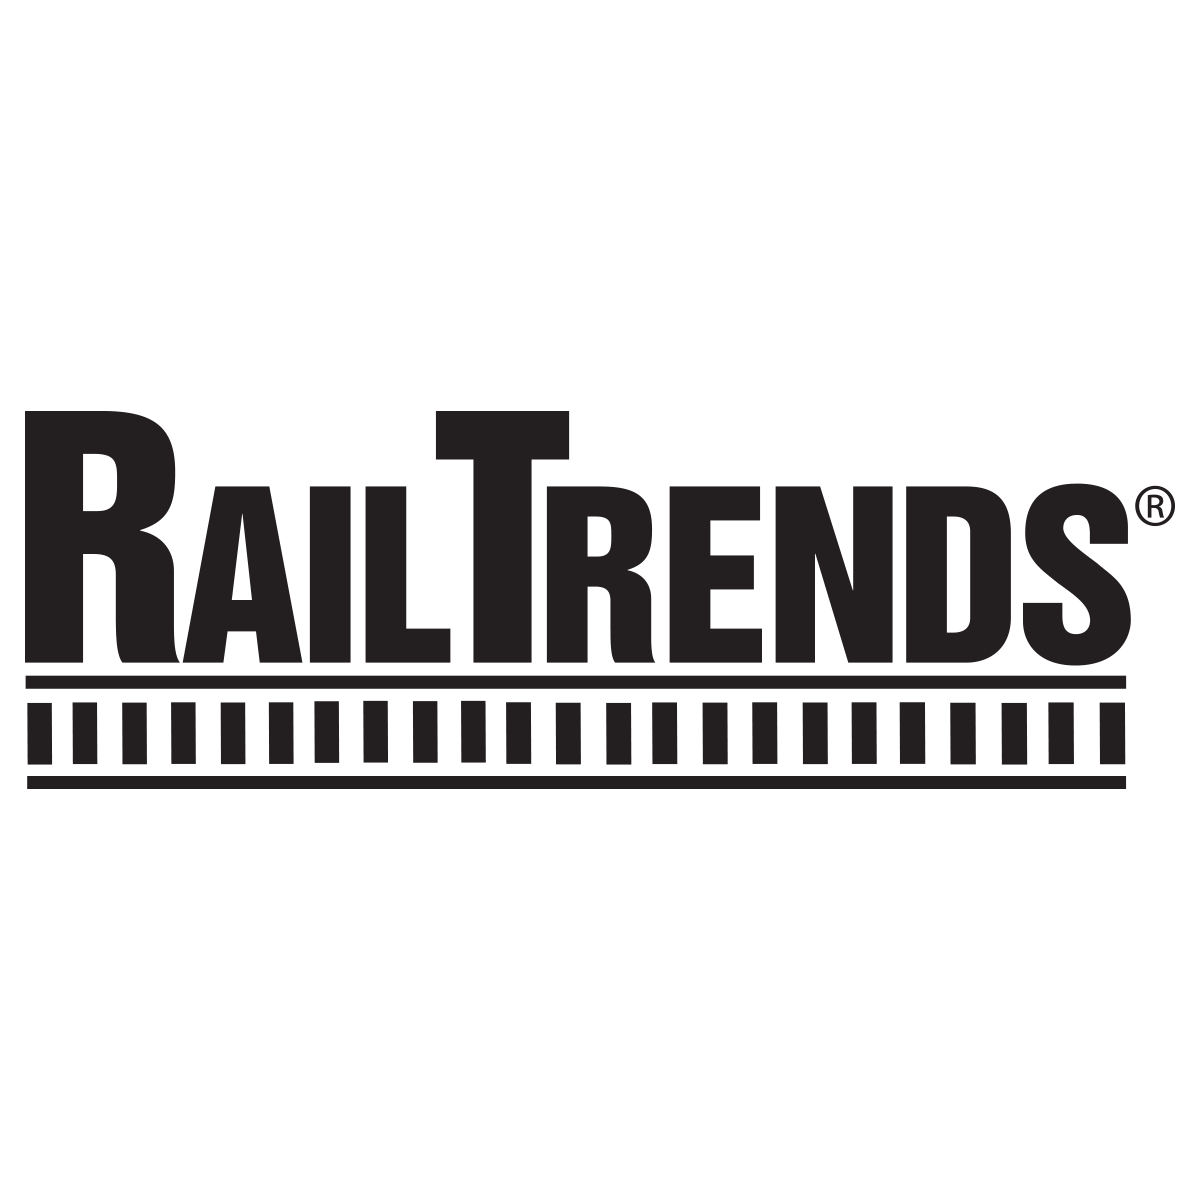 Railtrends (1)